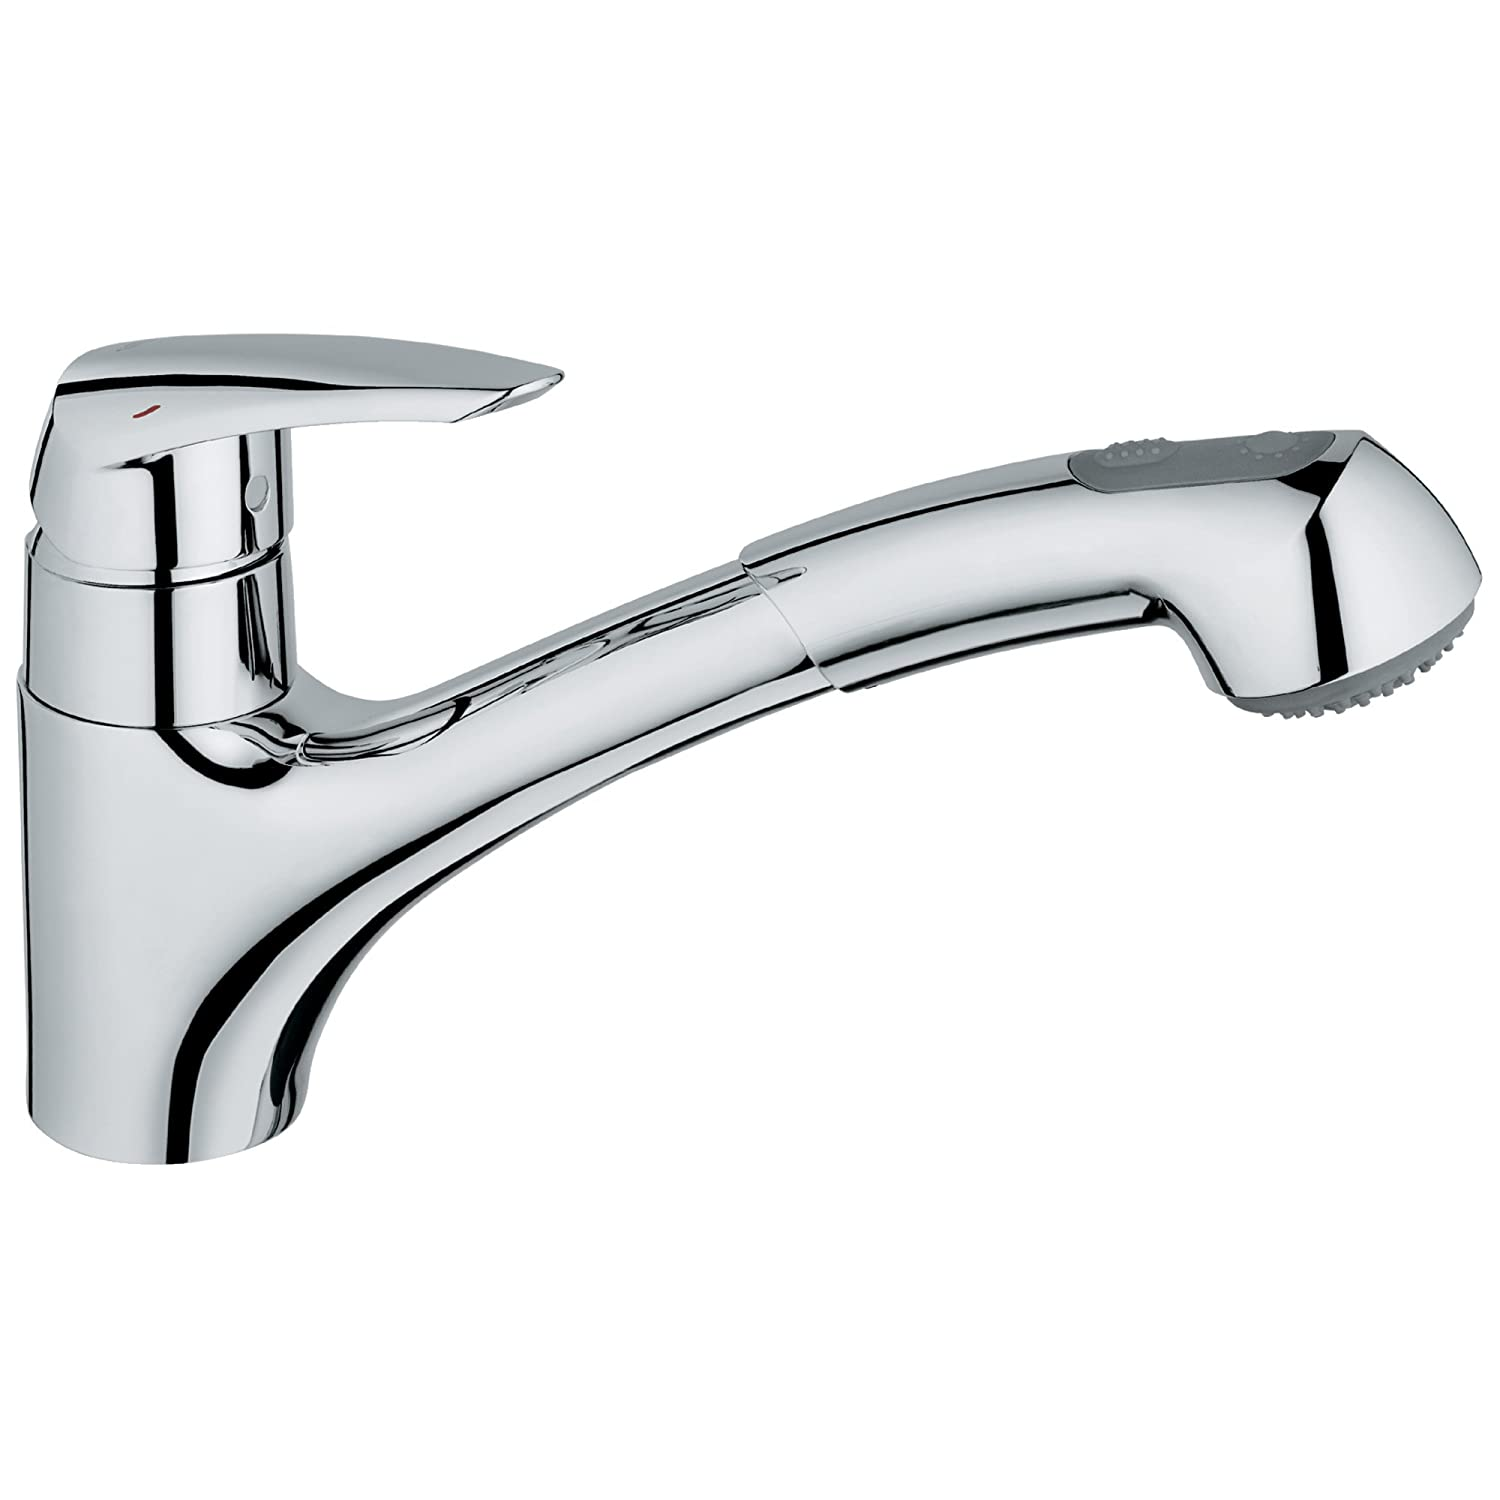 Eurodisc Single-Handle Pull-Out Kitchen Faucet